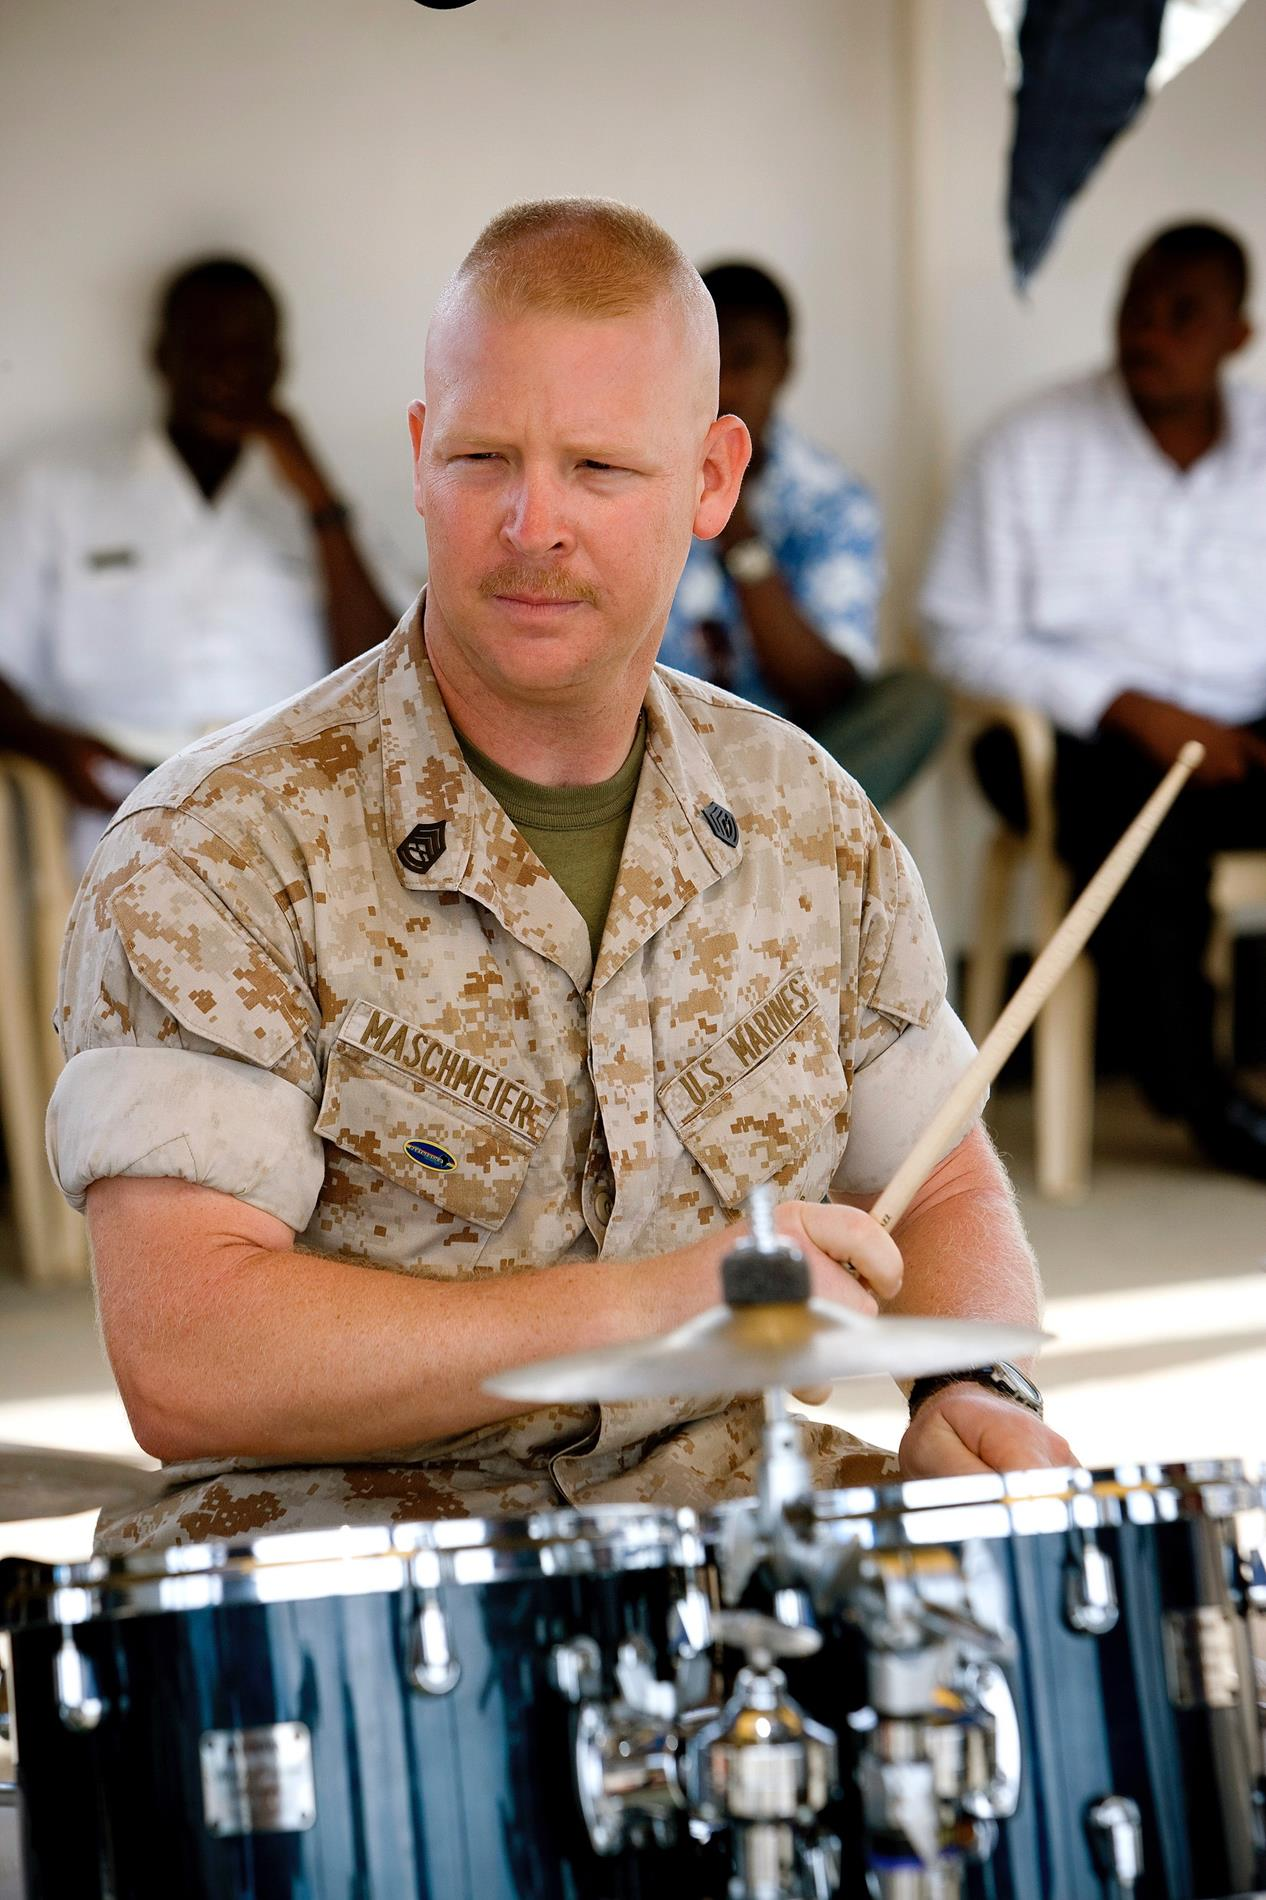 Photo taken in Tema, Ghana during a joint performance with the Ghanese Armed Forces Band. I've been playing drums the longest of any of the instruments I play. I started set lessons in 4th grade taking after my dad who played the St. Louis area in his band The Cove Tones back in the 50s.